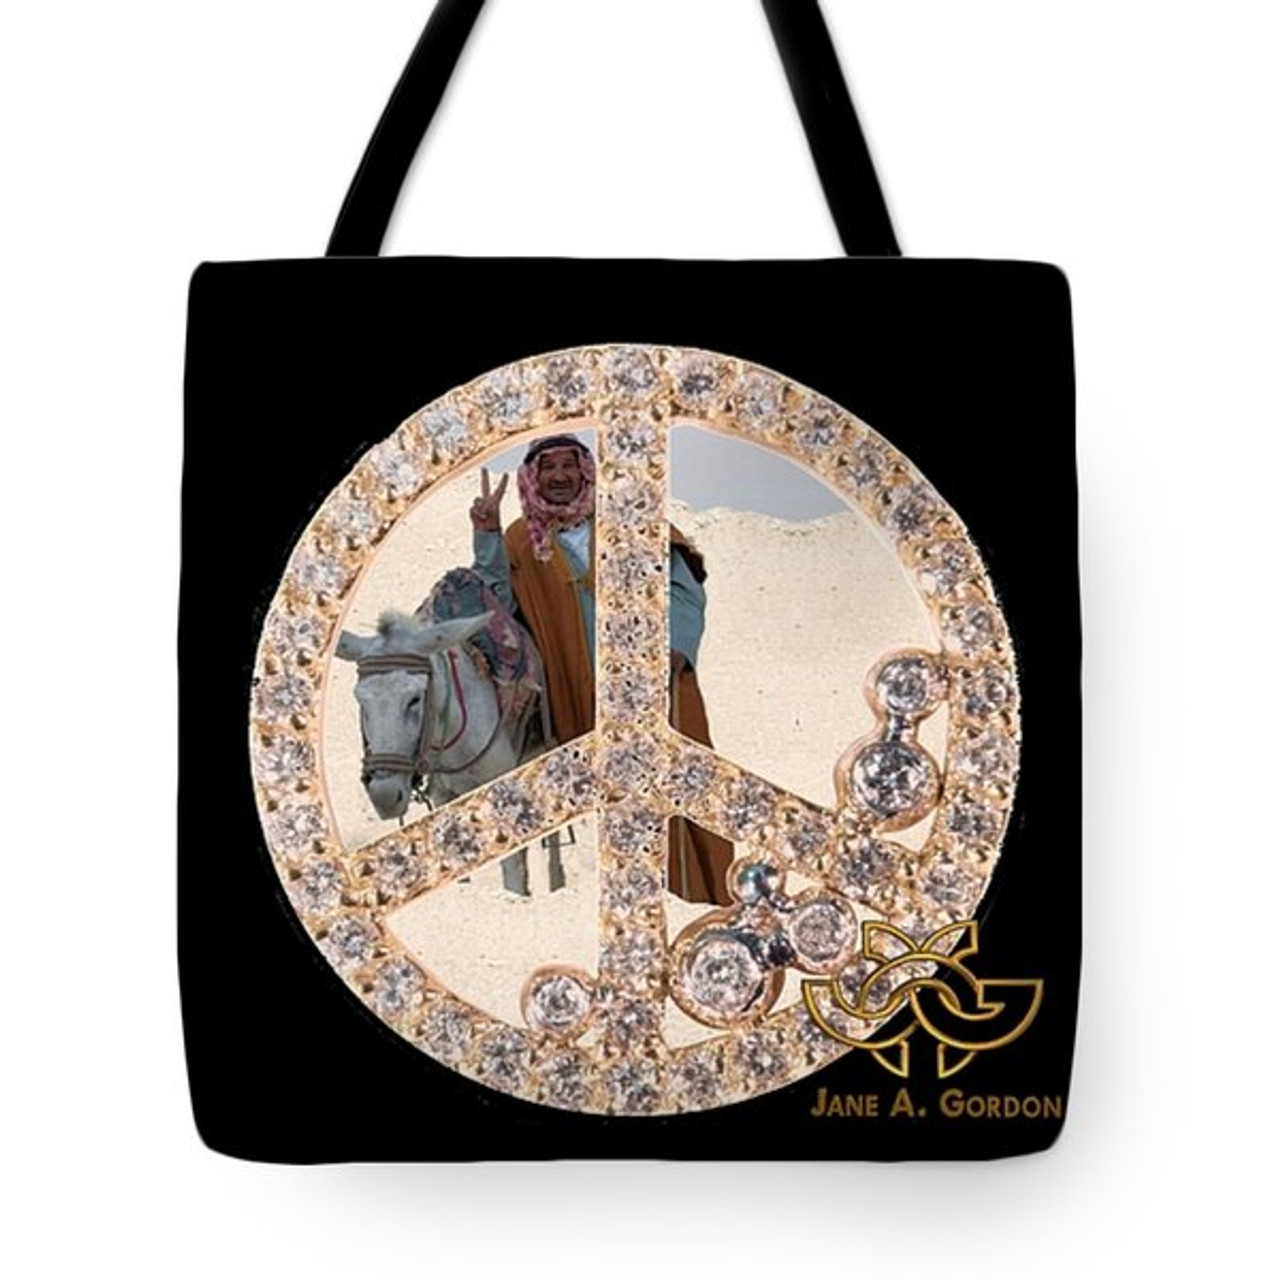 Peace inside peace. Art meets fashion in artful tote bags